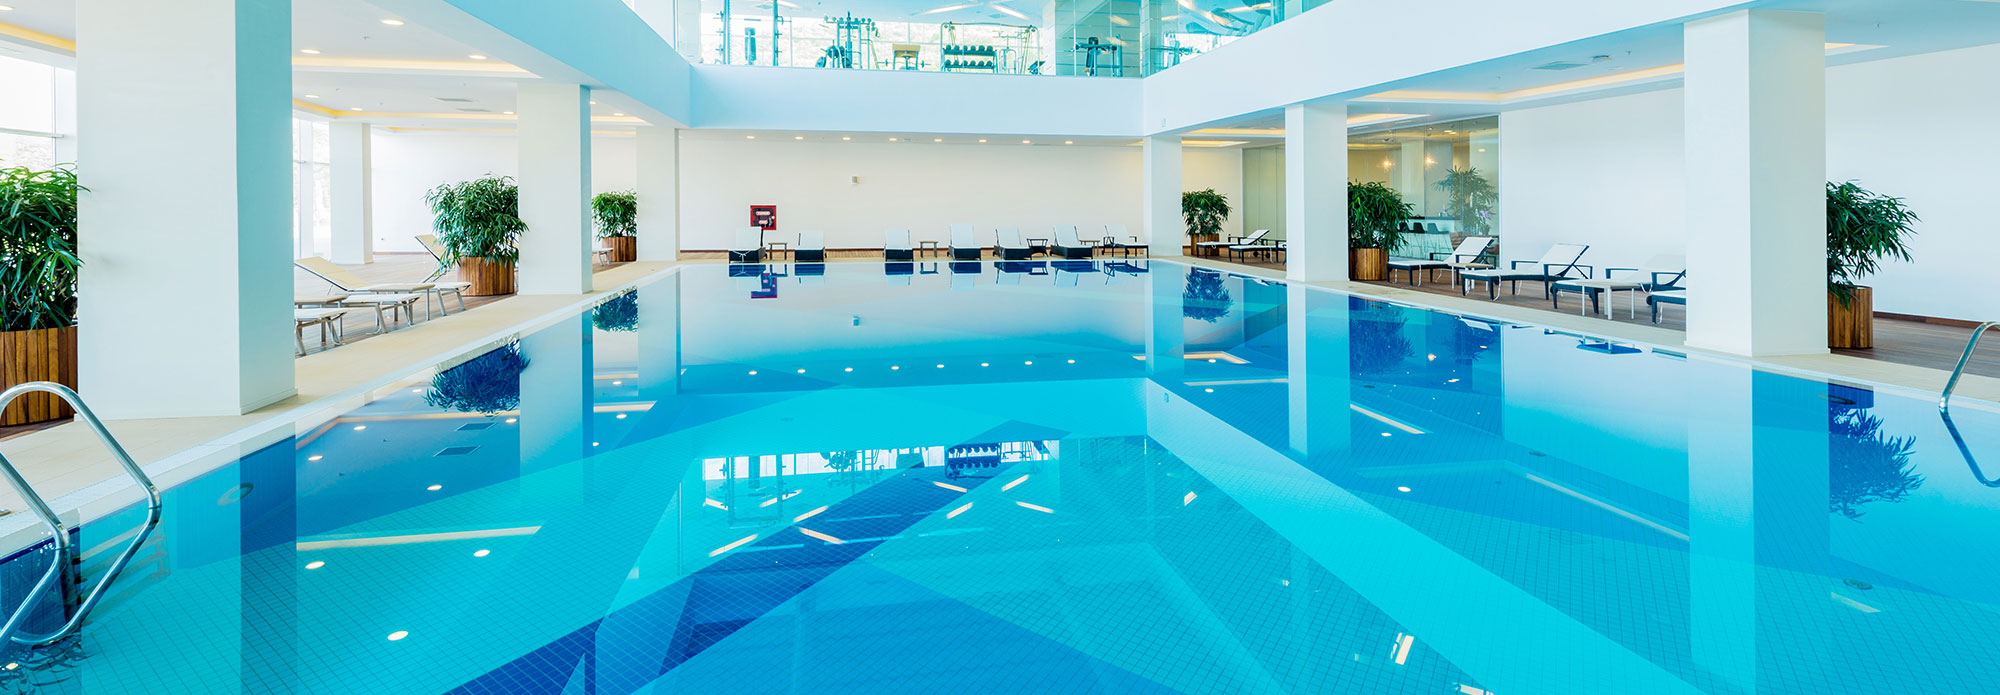 Swimming pool heating solutions